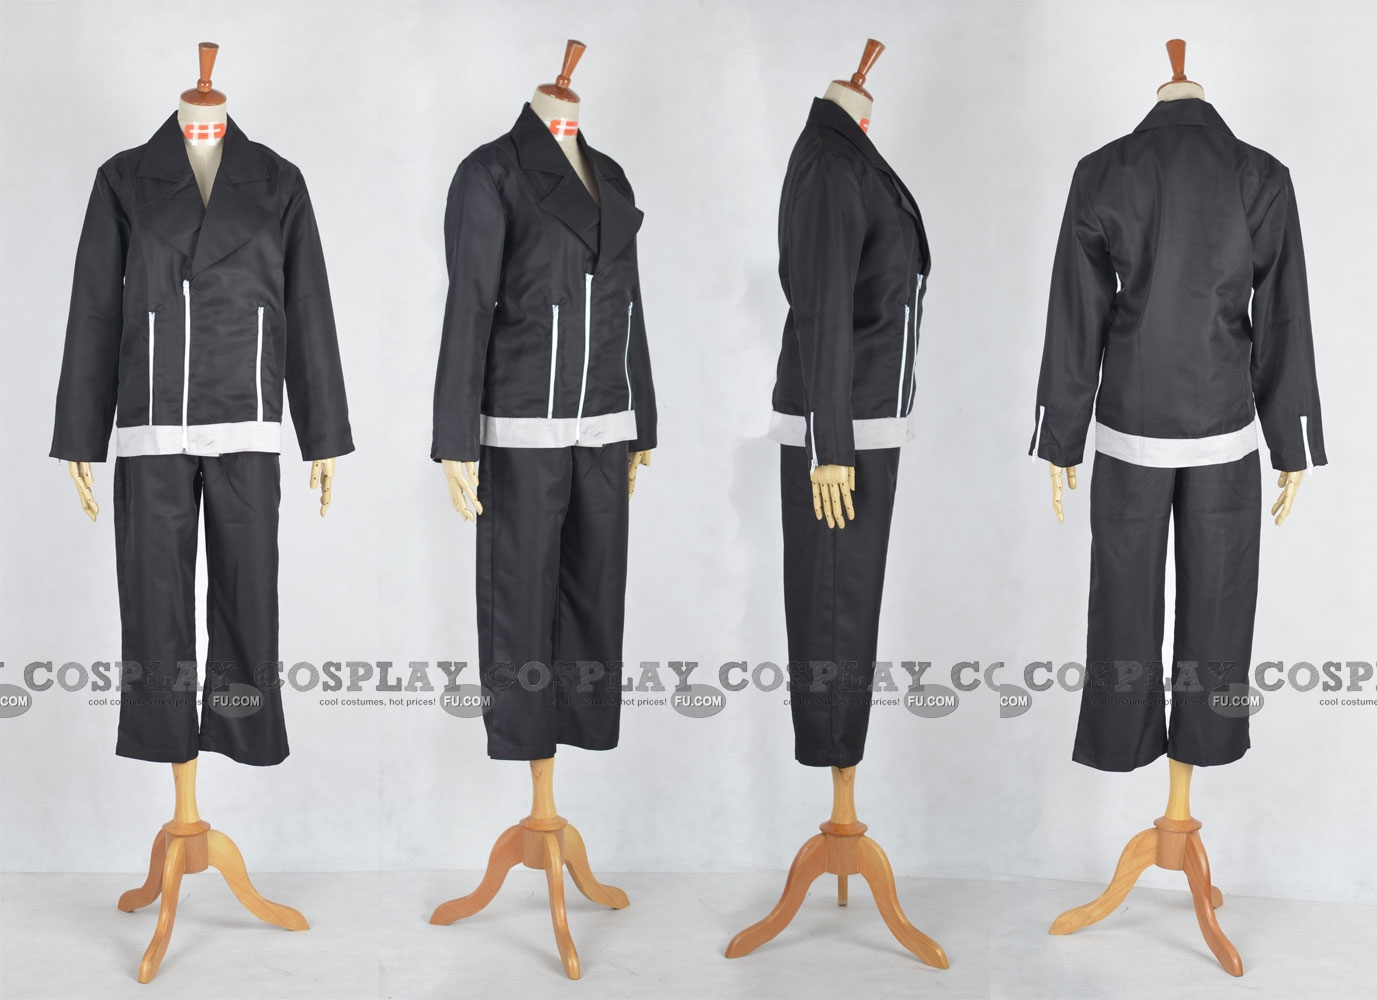 Kiba Cosplay Costume from Naruto Shippuuden